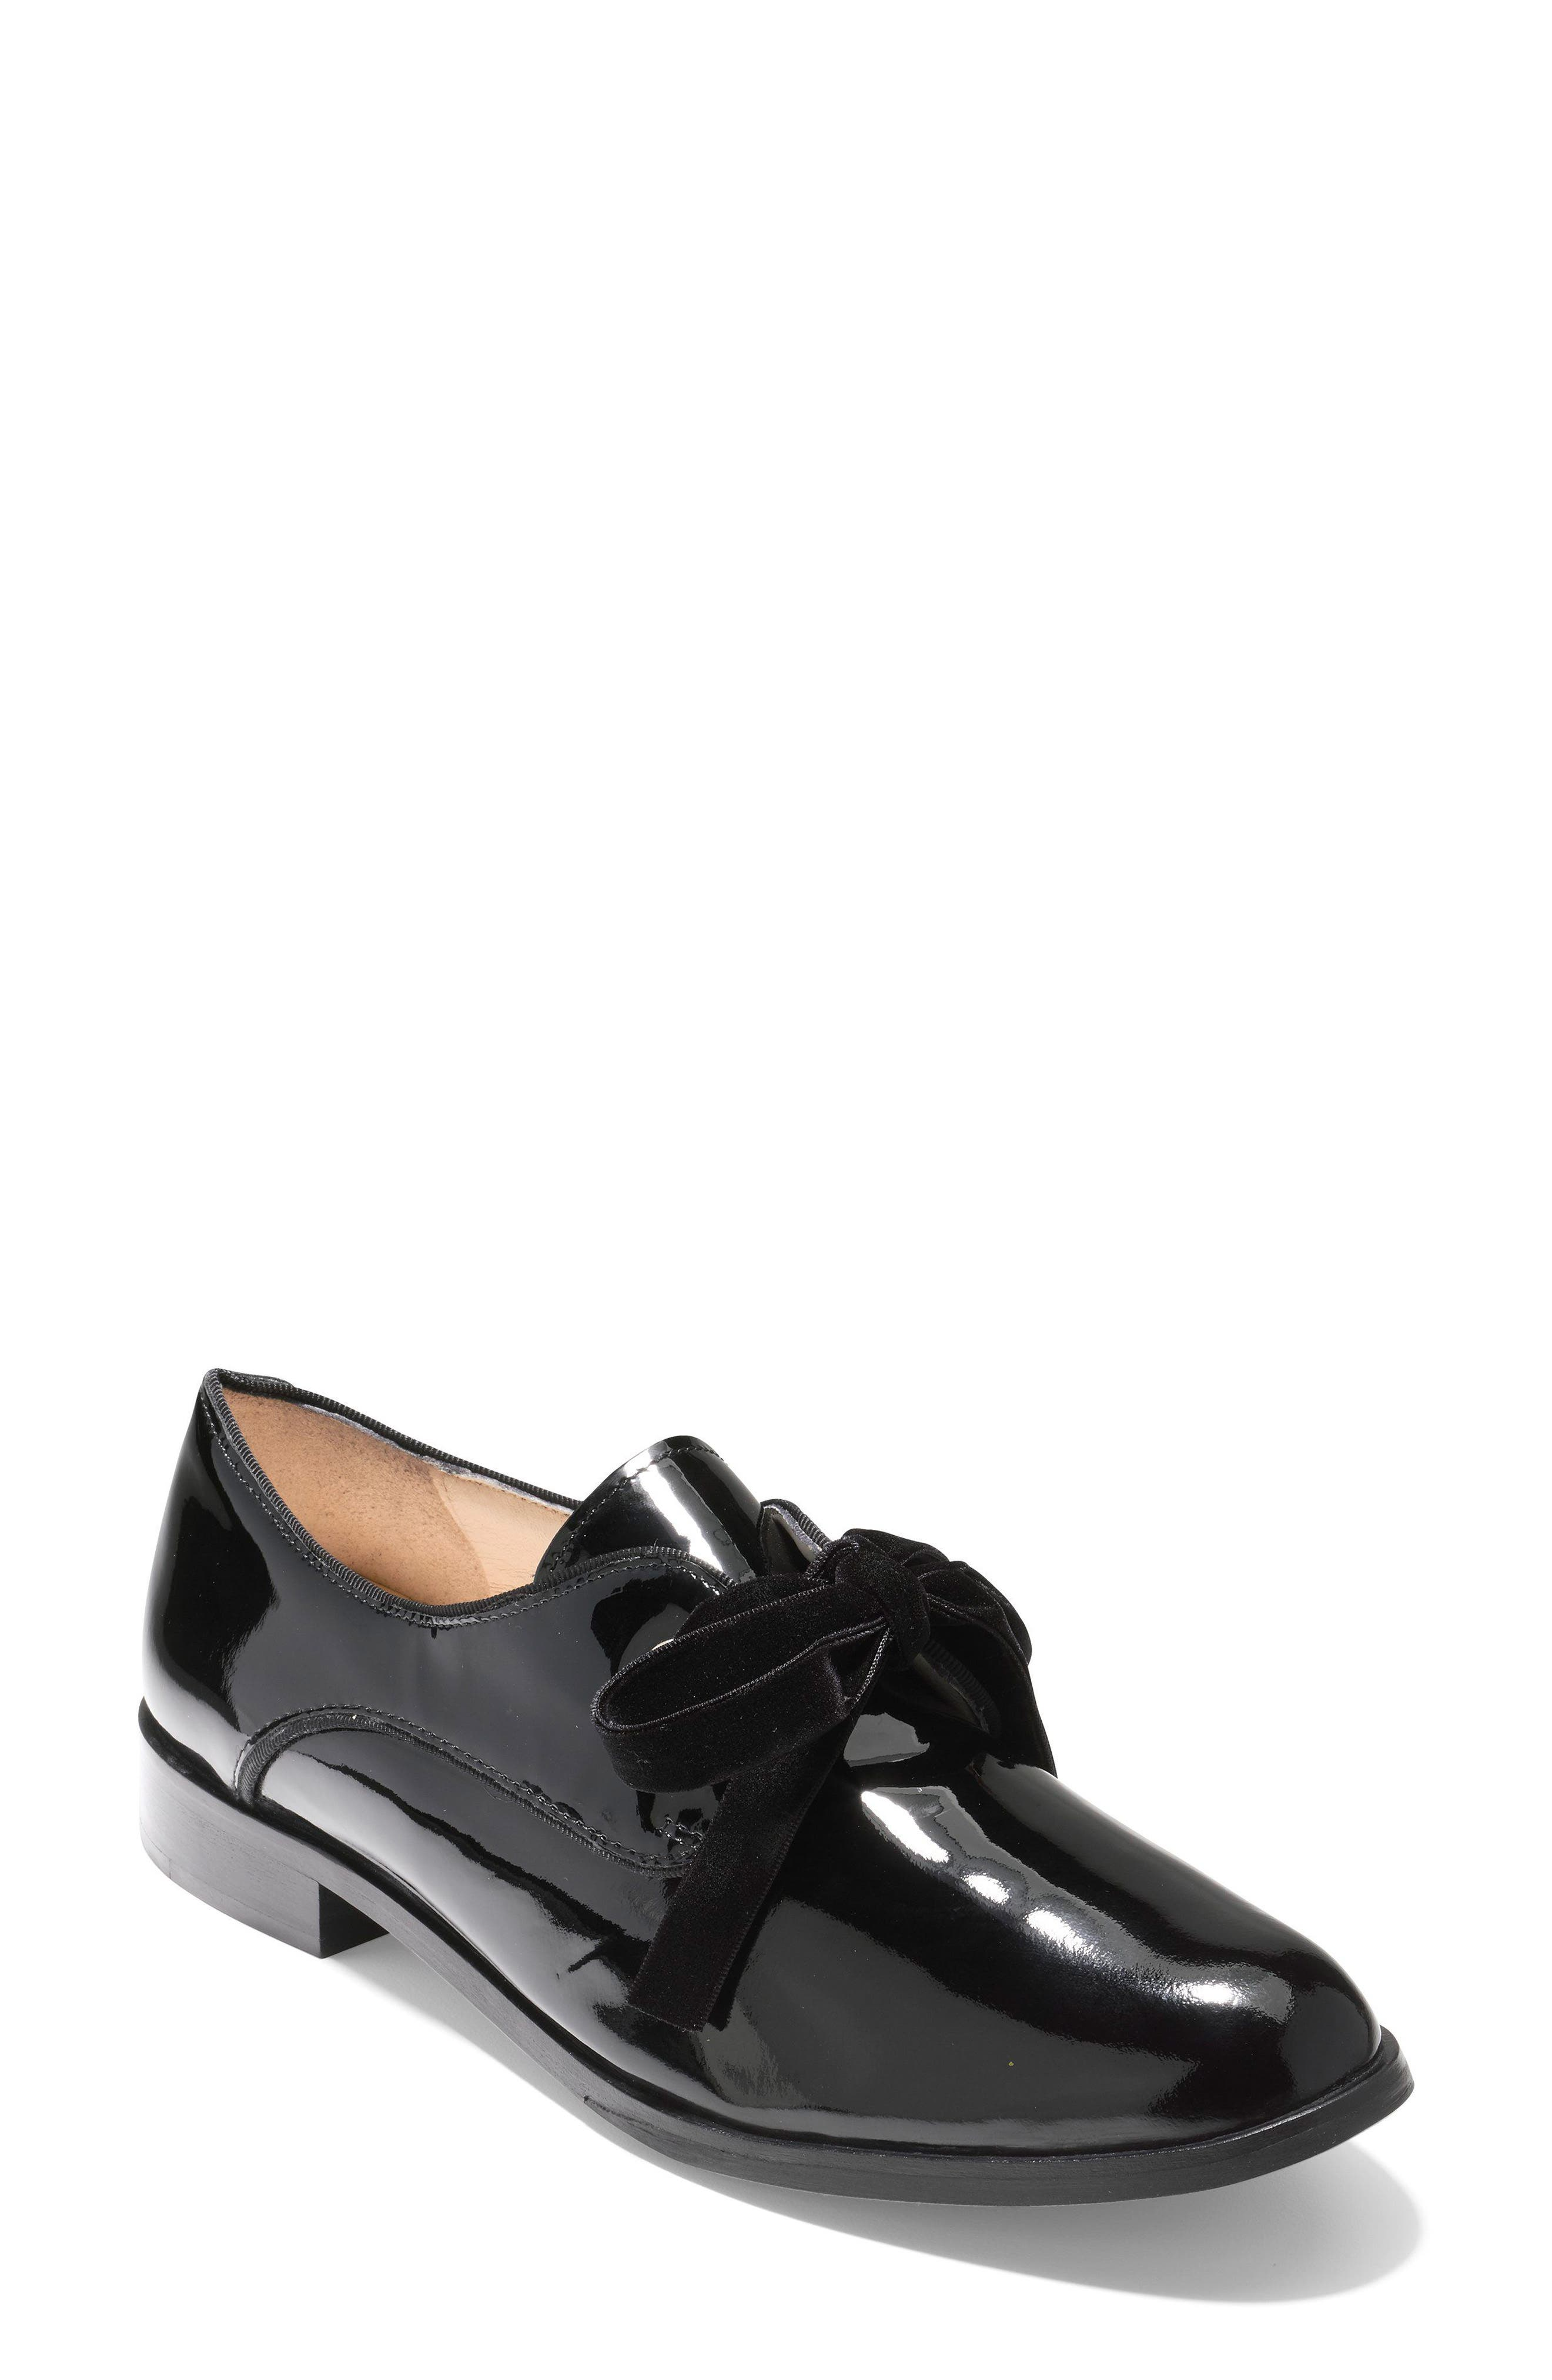 Jaylyn Oxford,                         Main,                         color, Black Patent